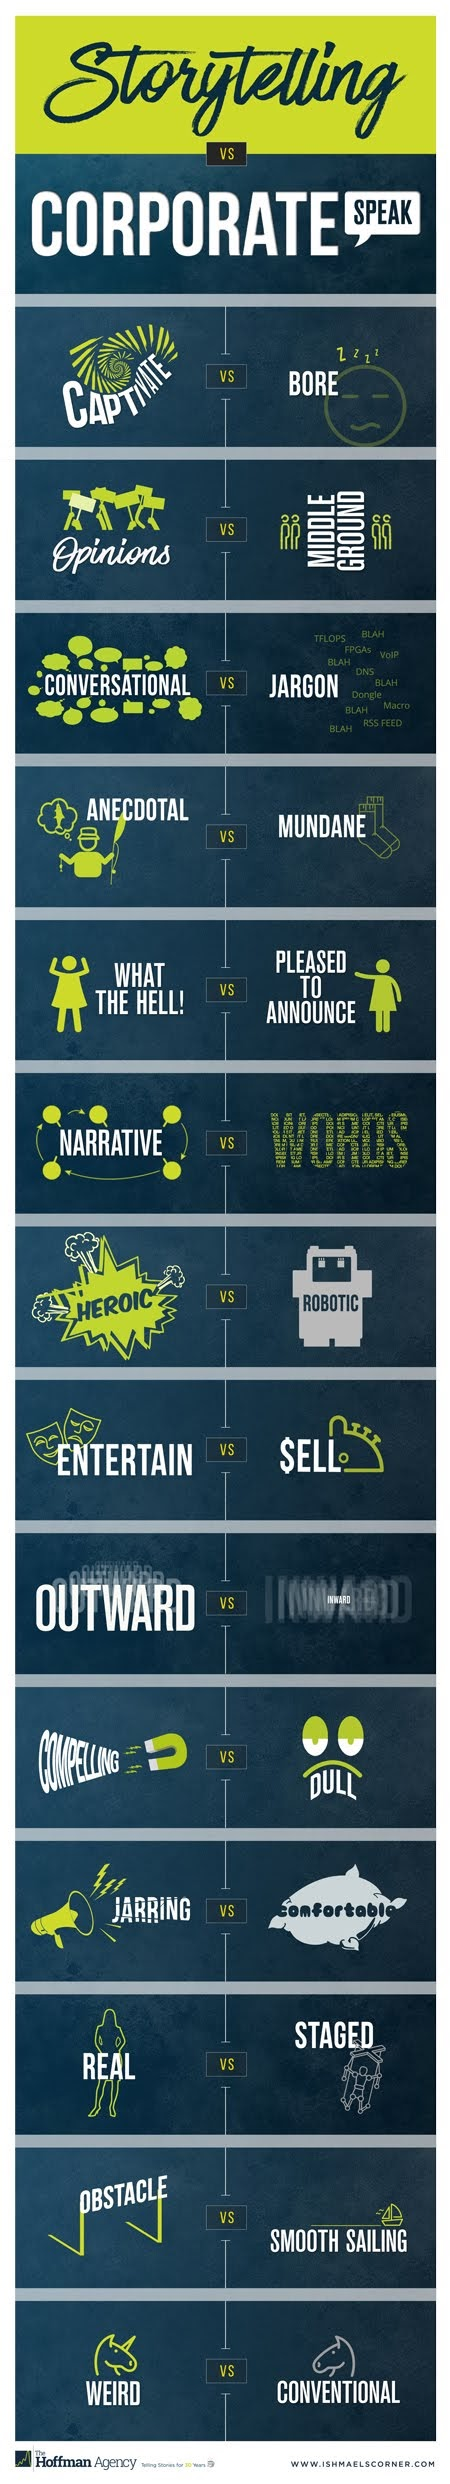 Storytelling vs Corporate Speak